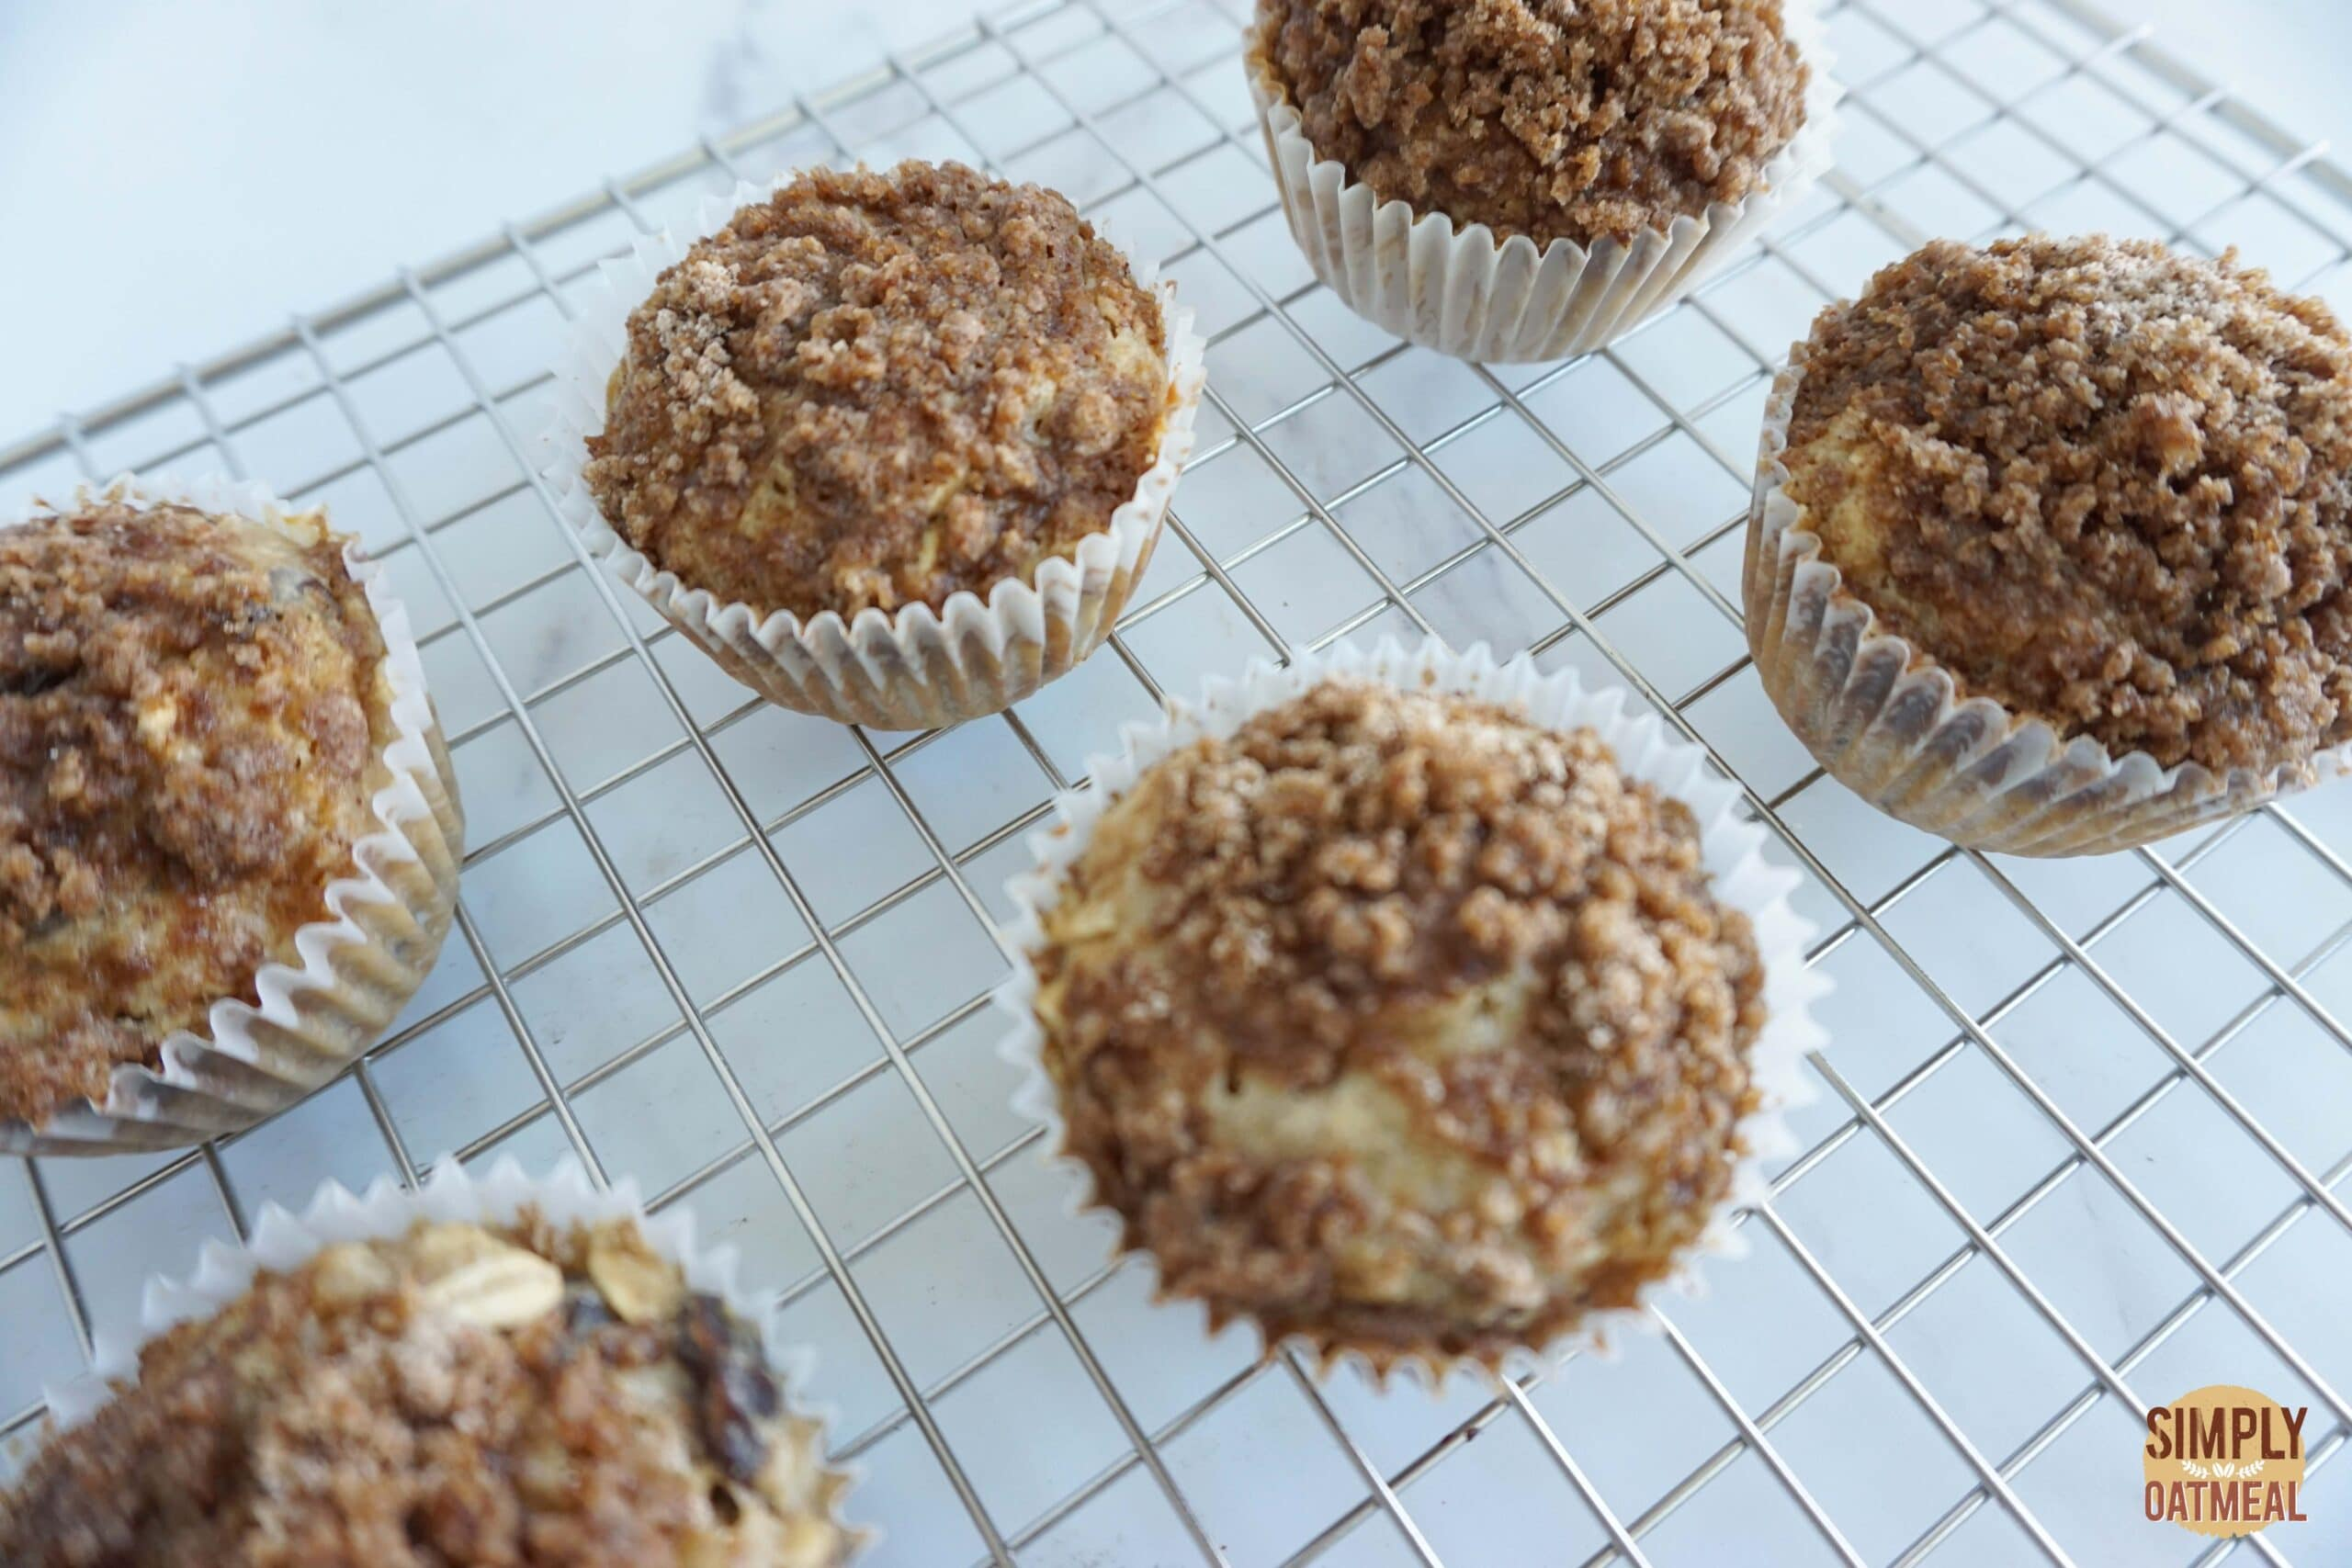 Cinnamon streusel oatmeal muffins cooling on wire rack